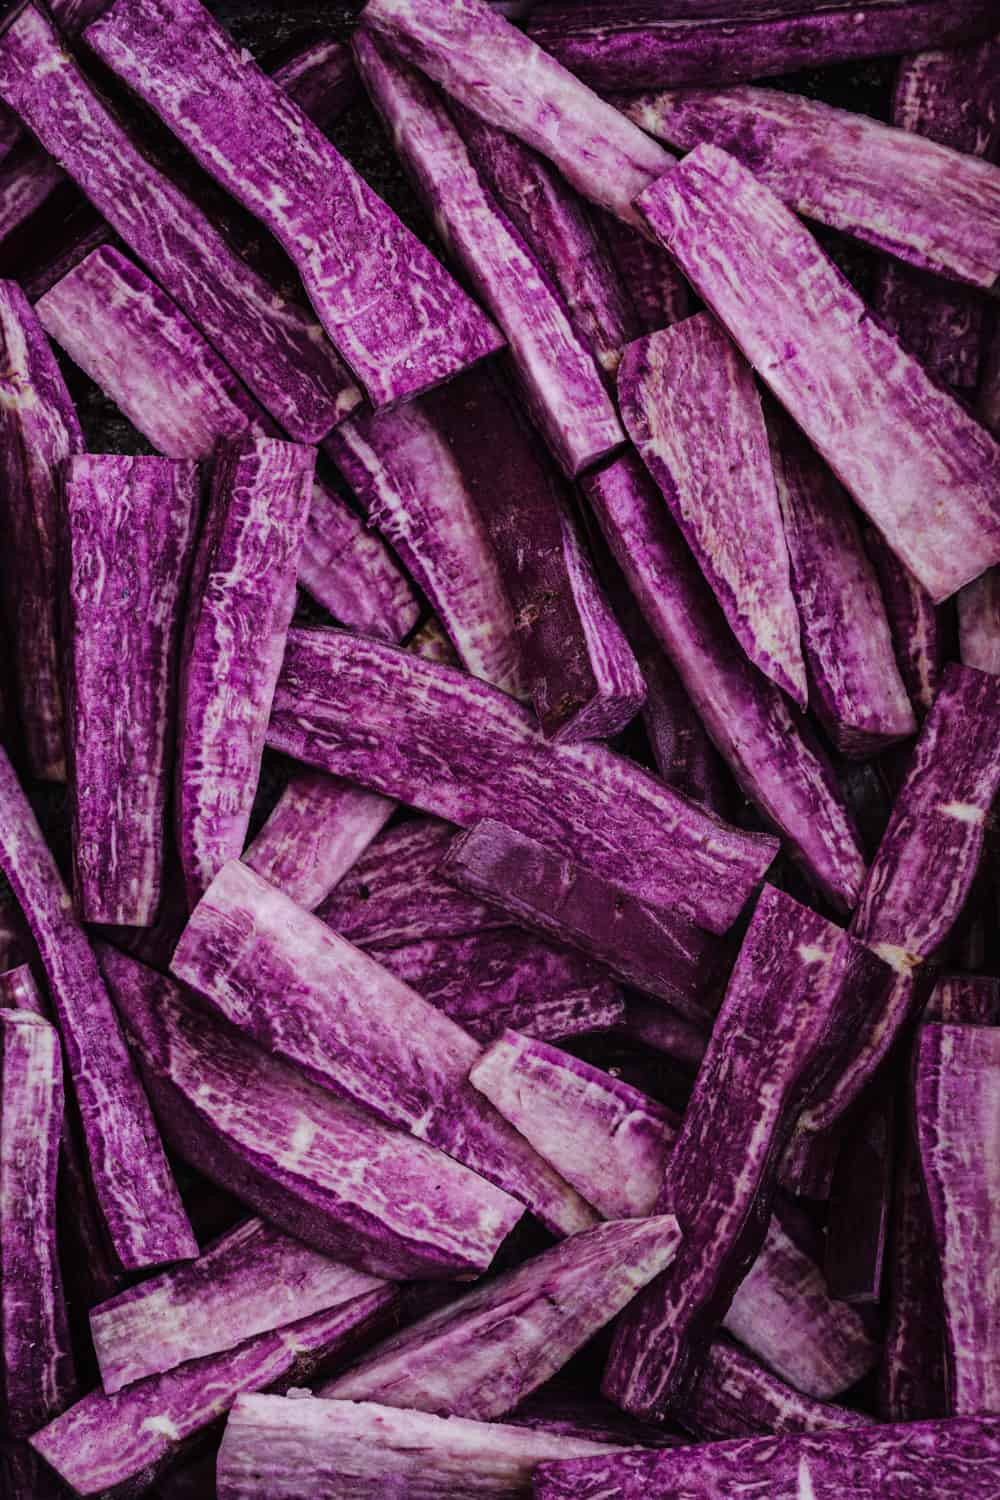 Raw purple sweet potatoes cut into thin wedges, overhead shot.